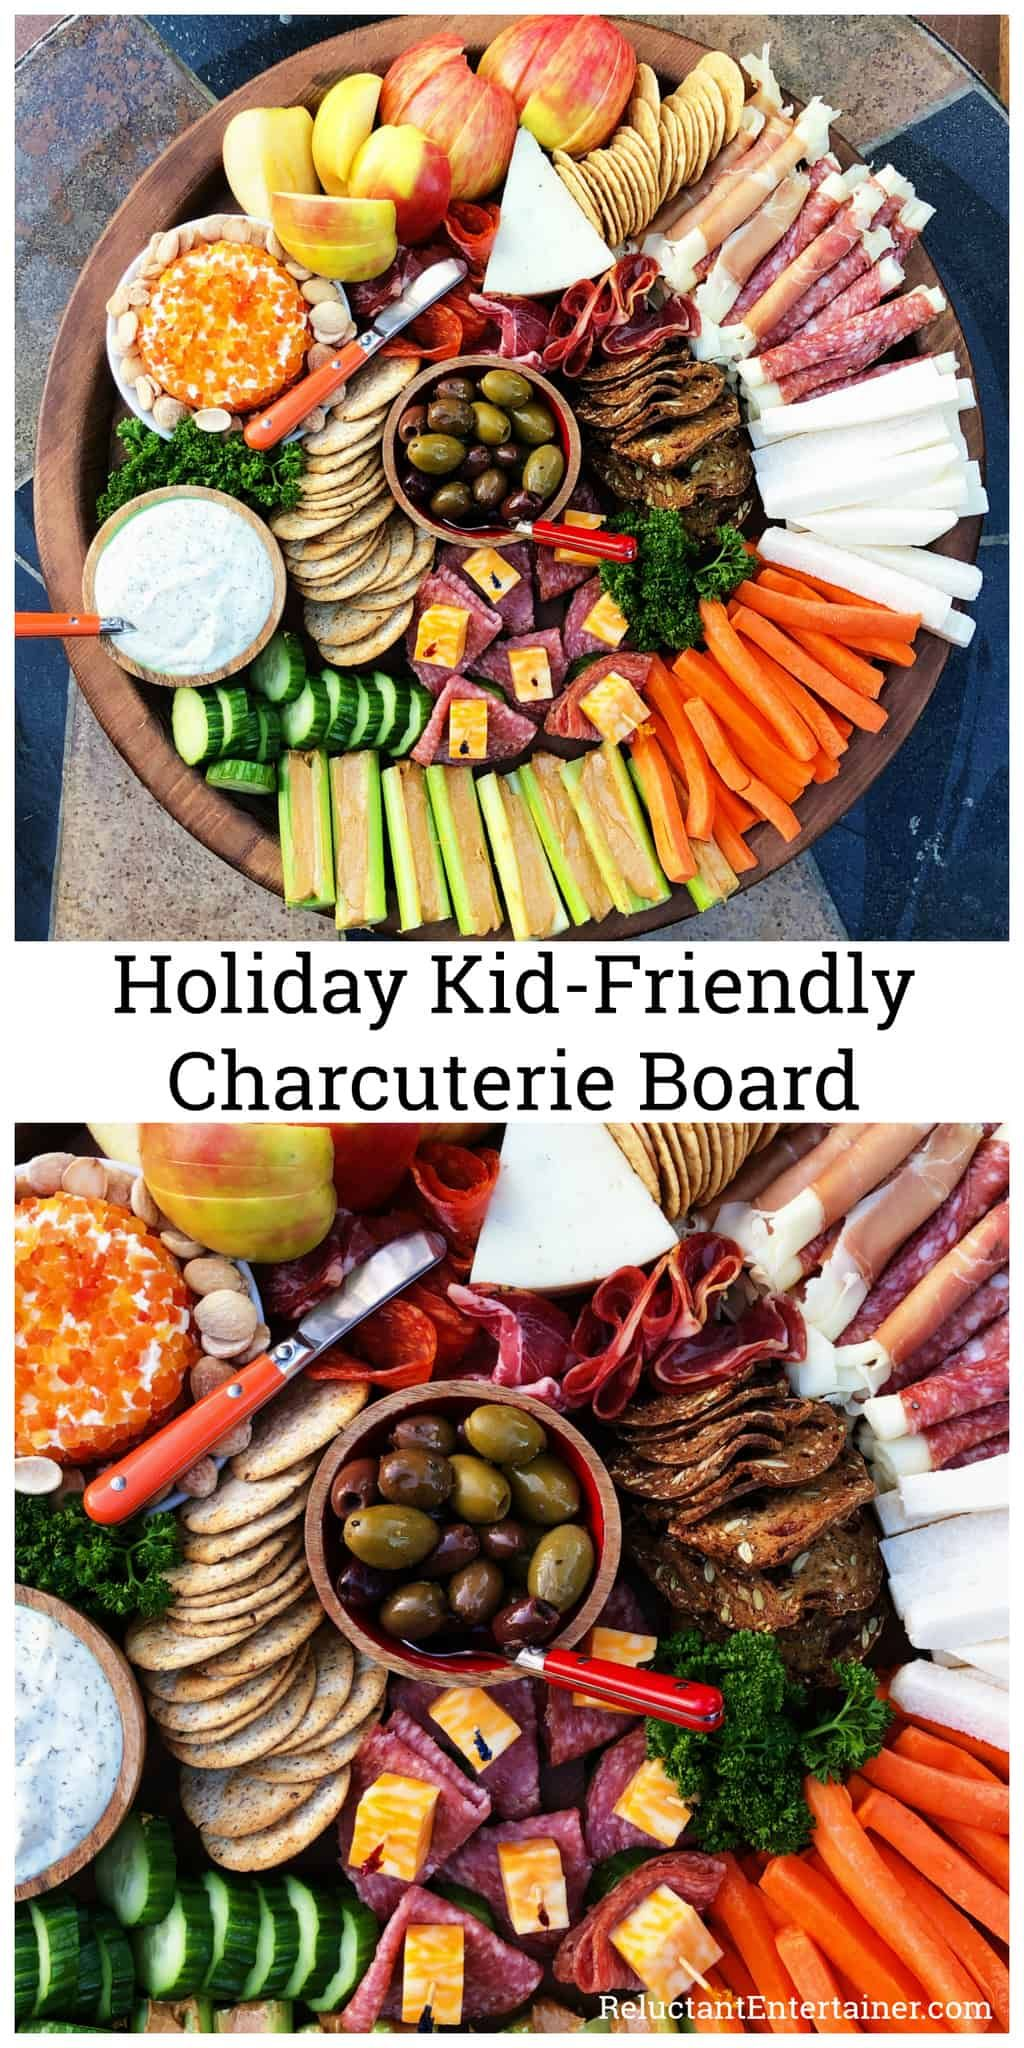 Holiday Kid-Friendly Charcuterie Board, mixing together crudités with charcuterie #kidcharcuterieboard #kidcheeseboard #charcuterieboard via @sandycoughlin #charcuterieboard